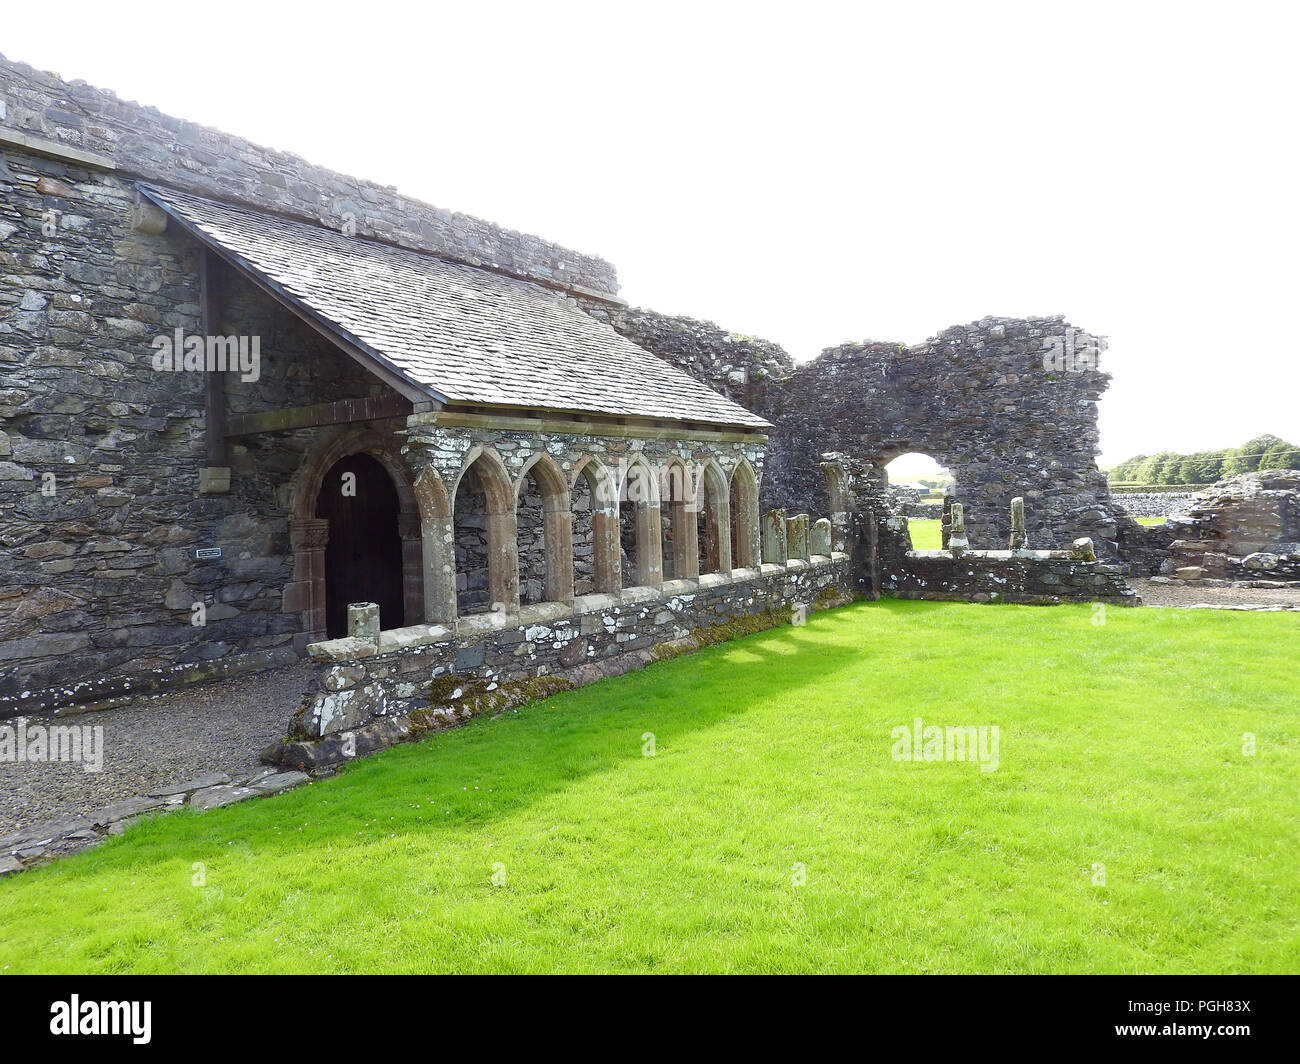 The Cloisters at Glenluce Abbey, Scotland - Stock Image